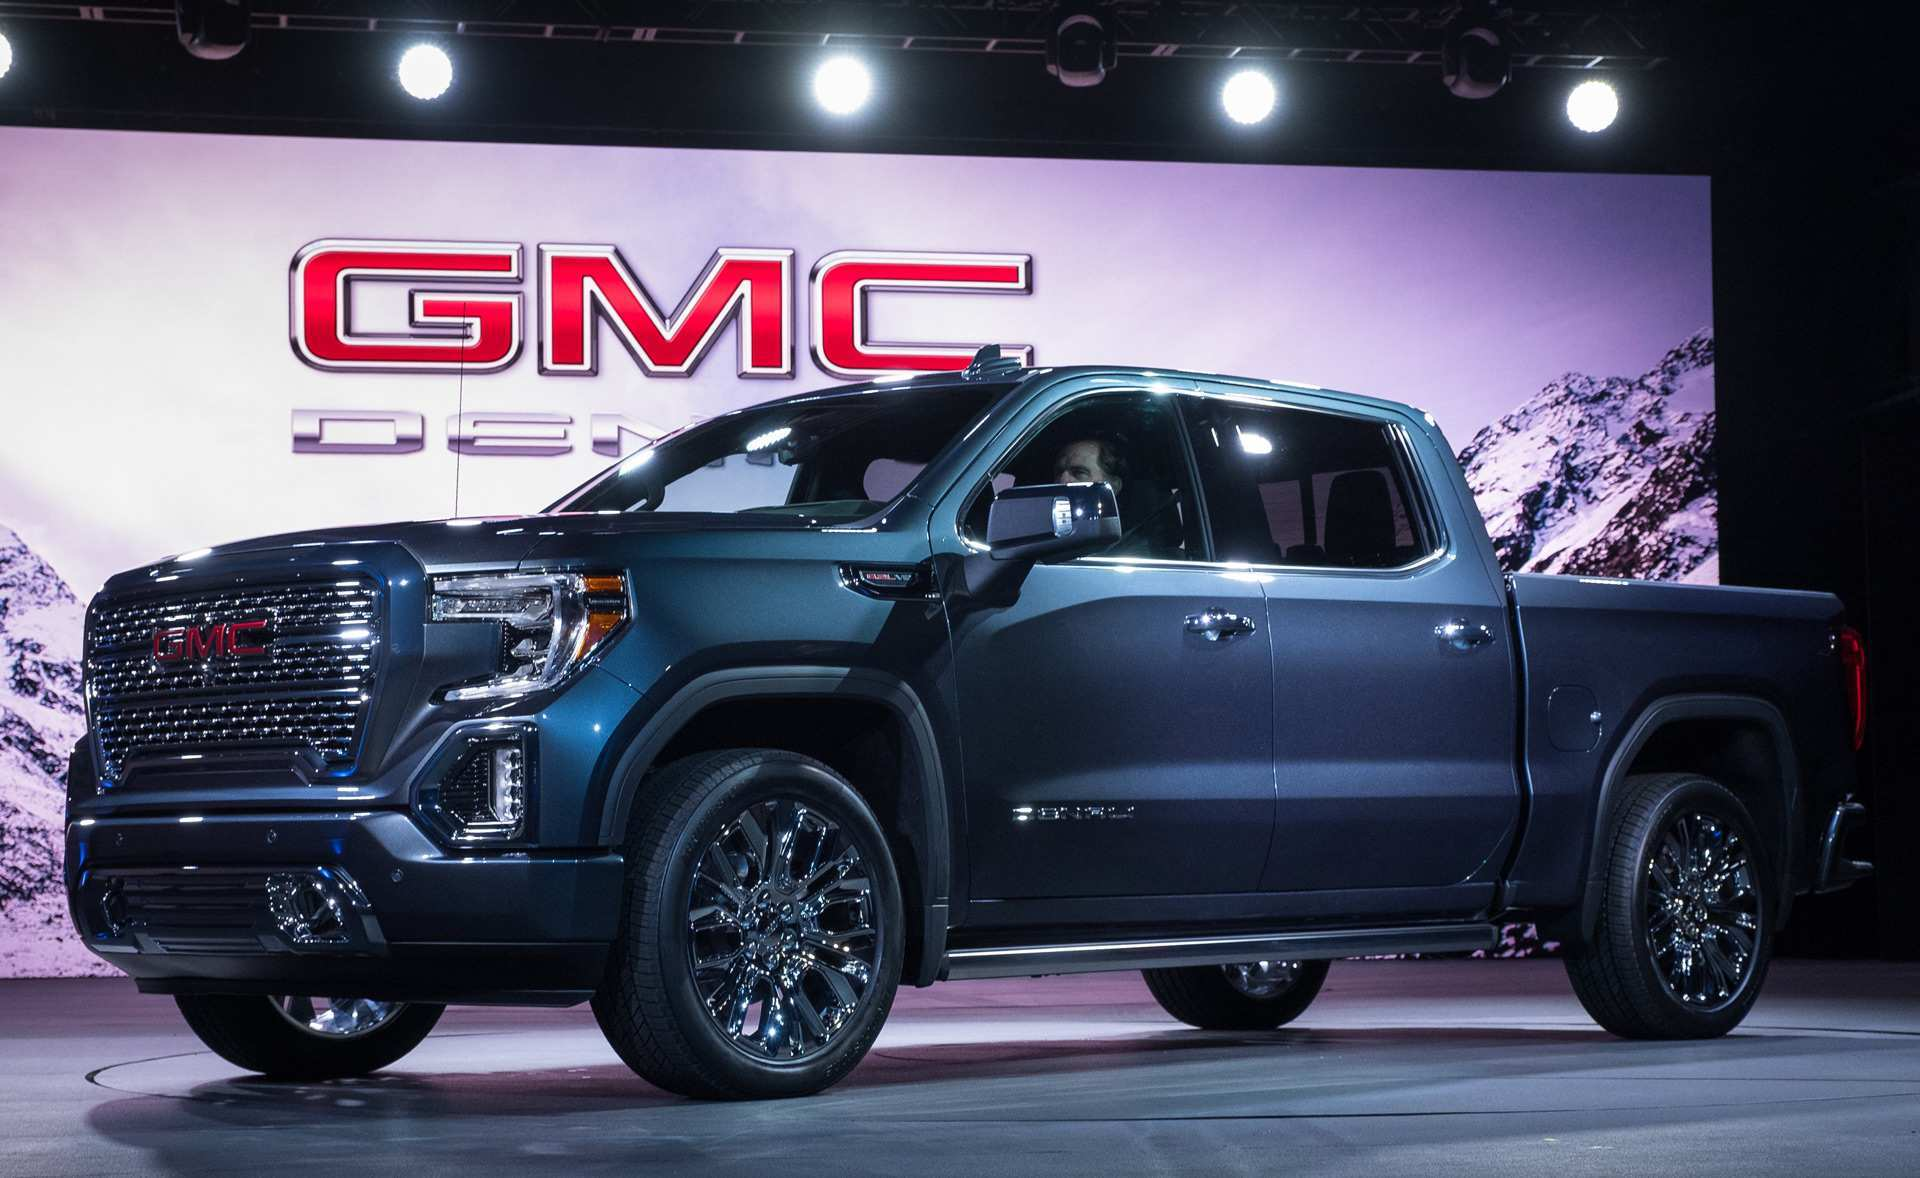 51 Concept of 2019 Gmc 1500 Duramax Prices with 2019 Gmc 1500 Duramax